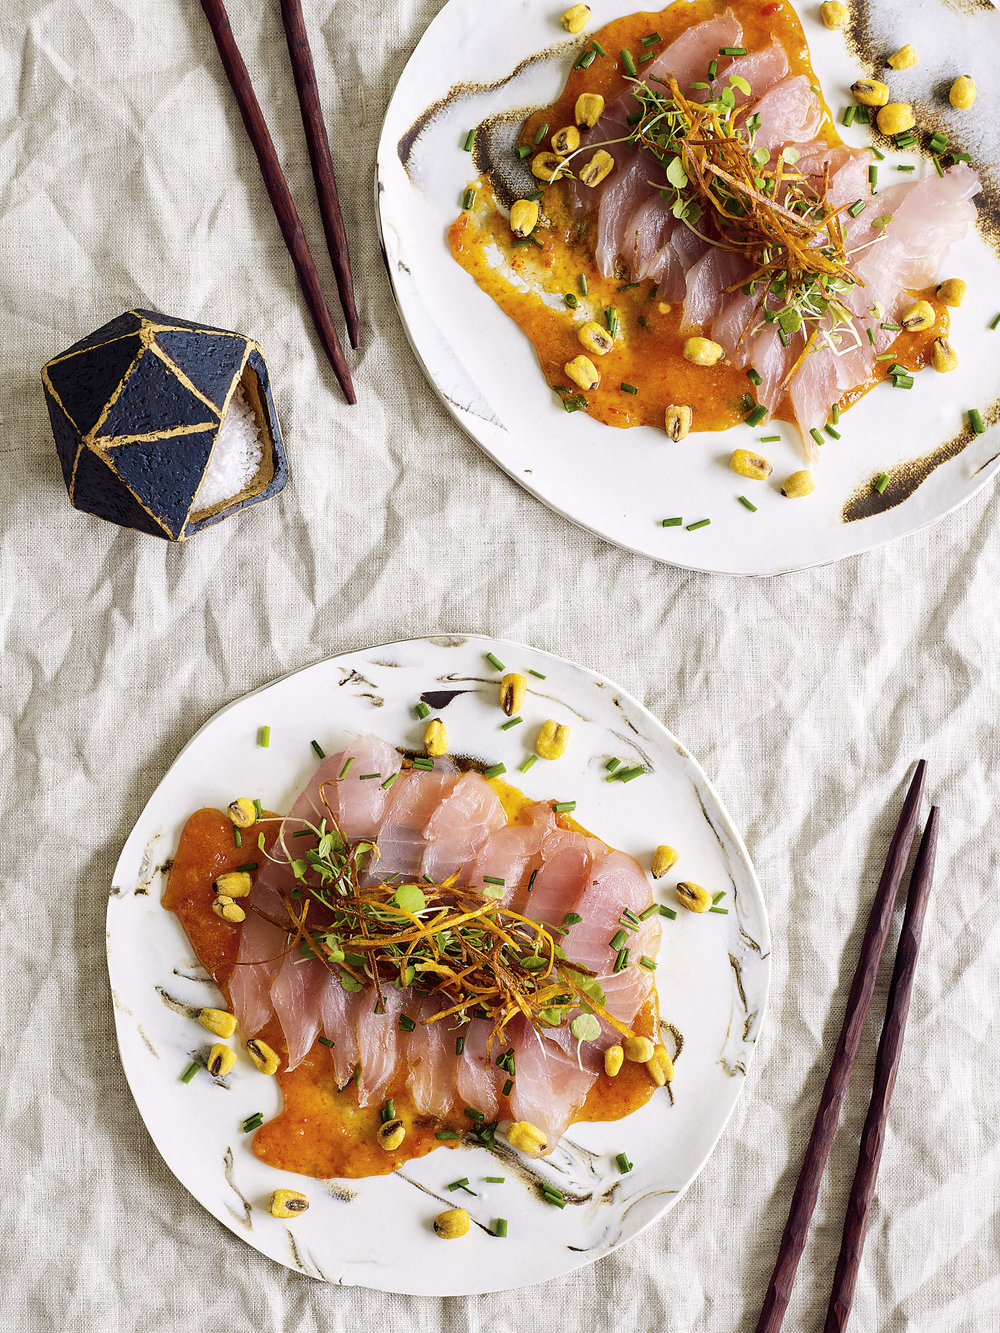 Food styling by Fiona Smith, Photography by Aaron McClean